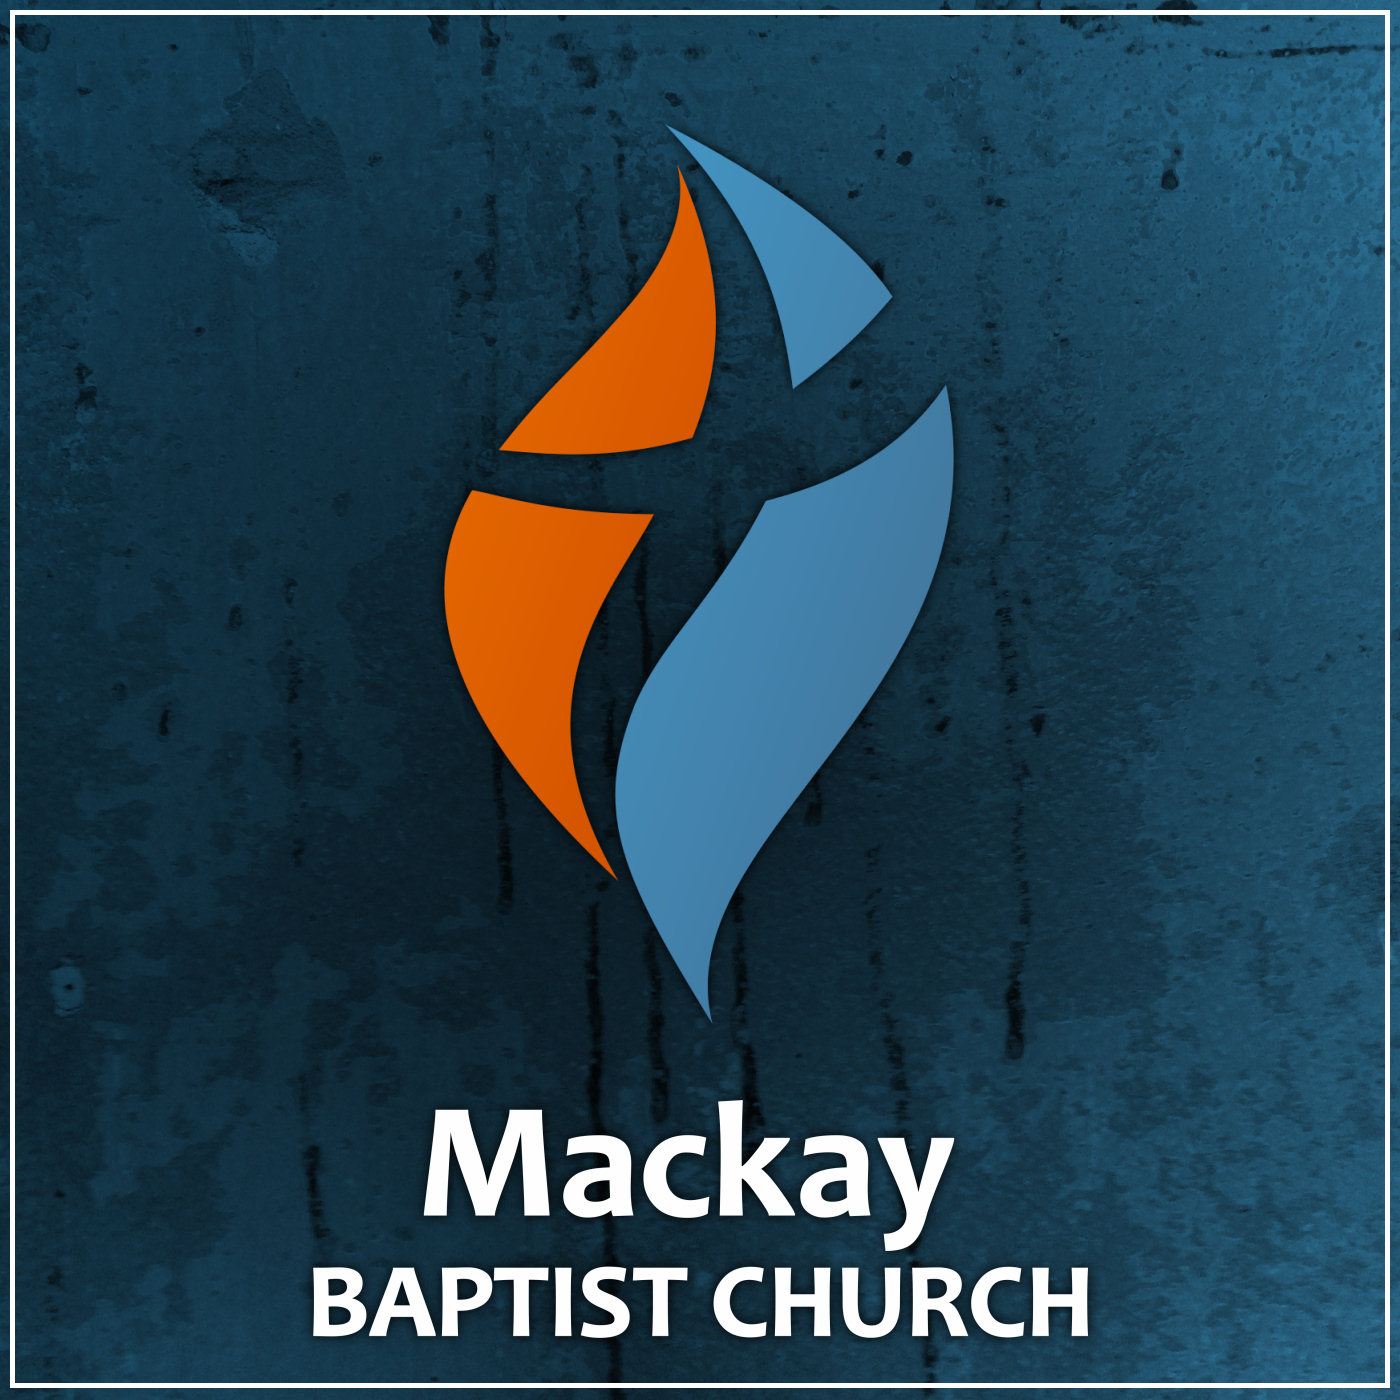 Mackay Baptist Church